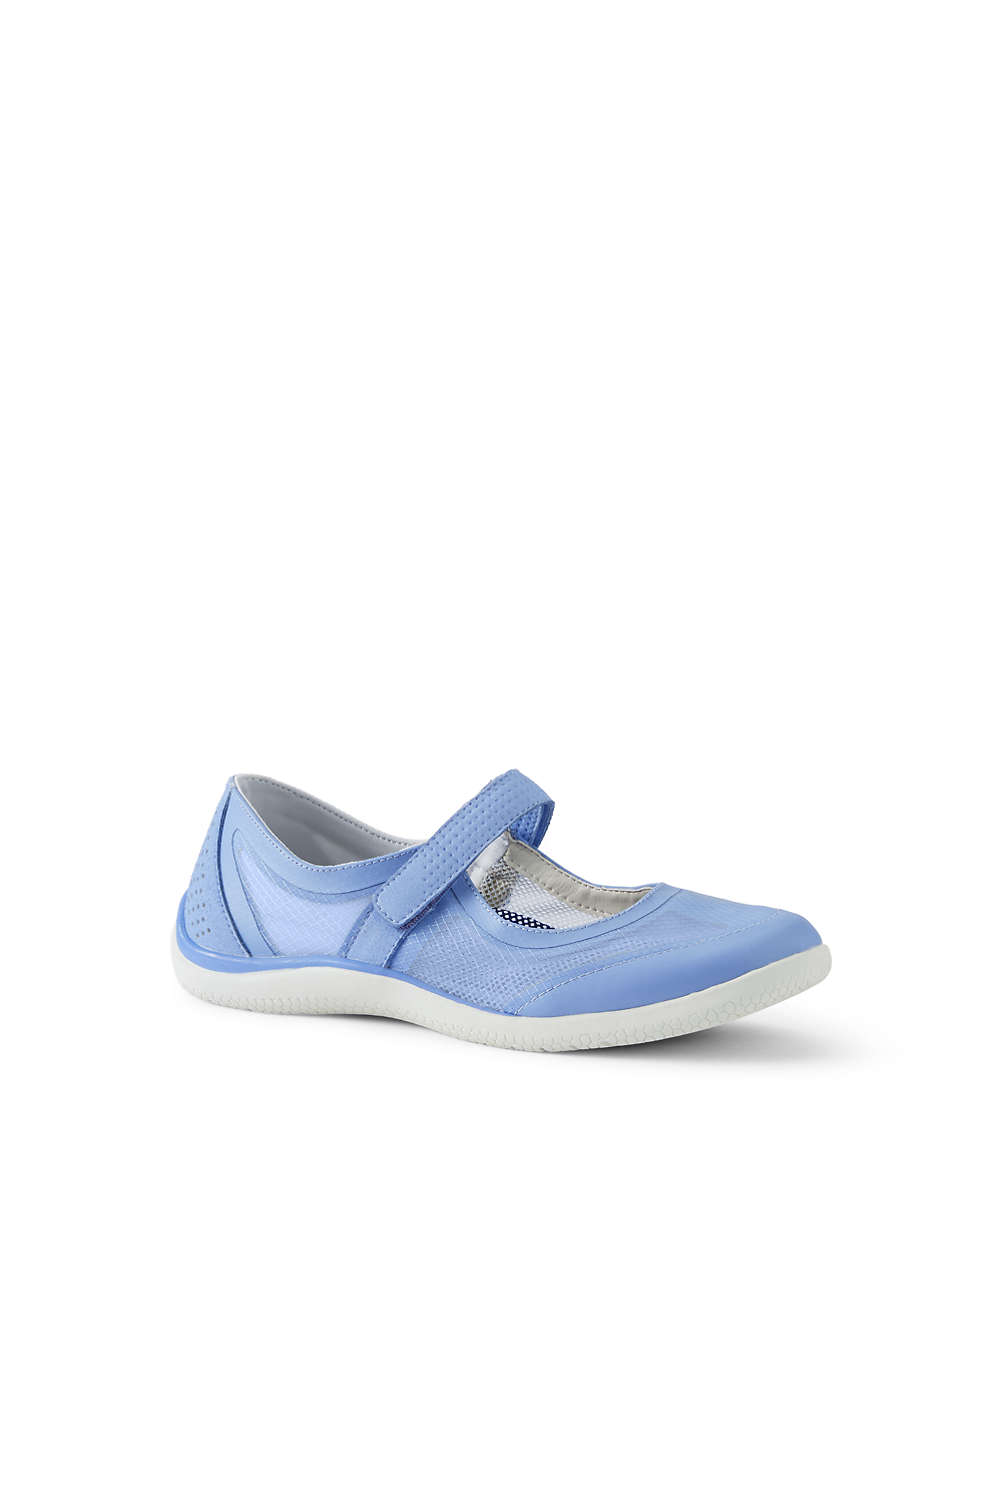 Women s Mary Jane Water Shoes from Lands  End 54016dcd3d